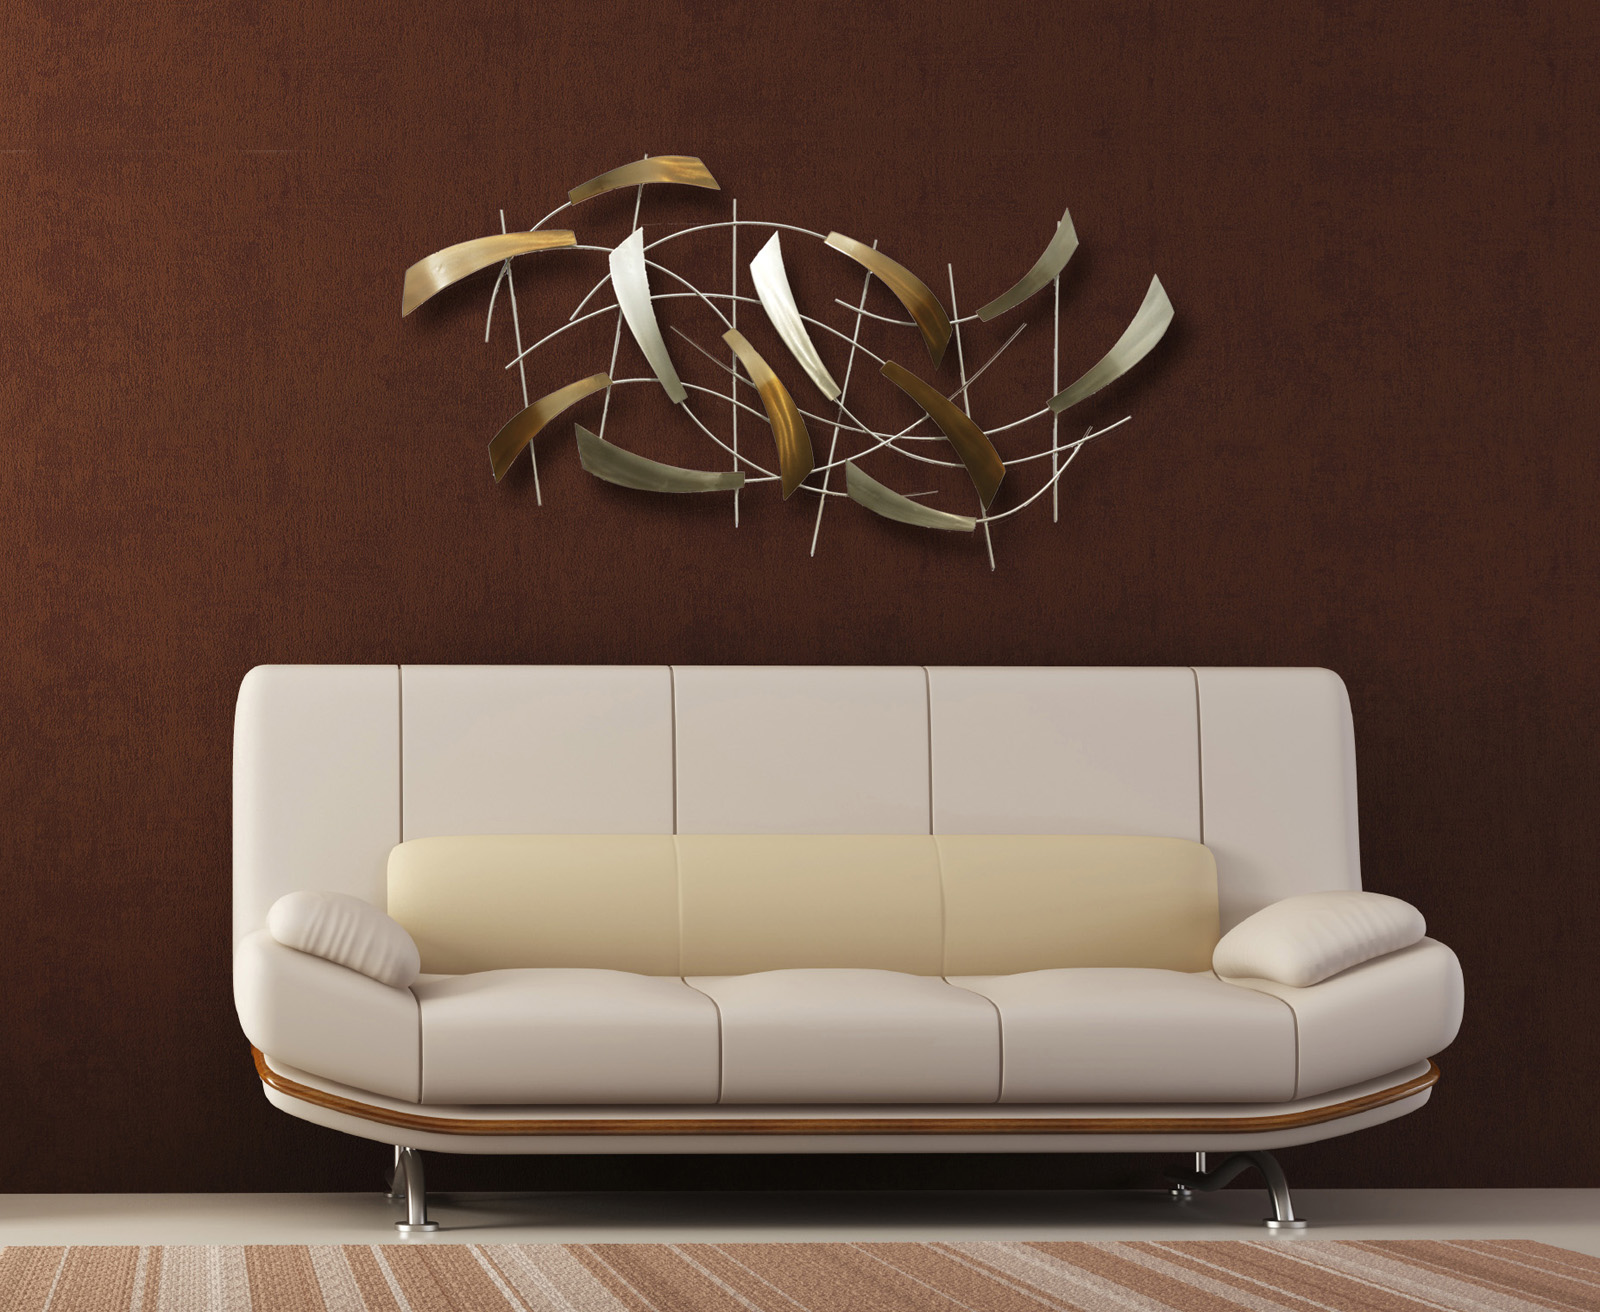 wall designs are moderately priced furniture gifts home decor